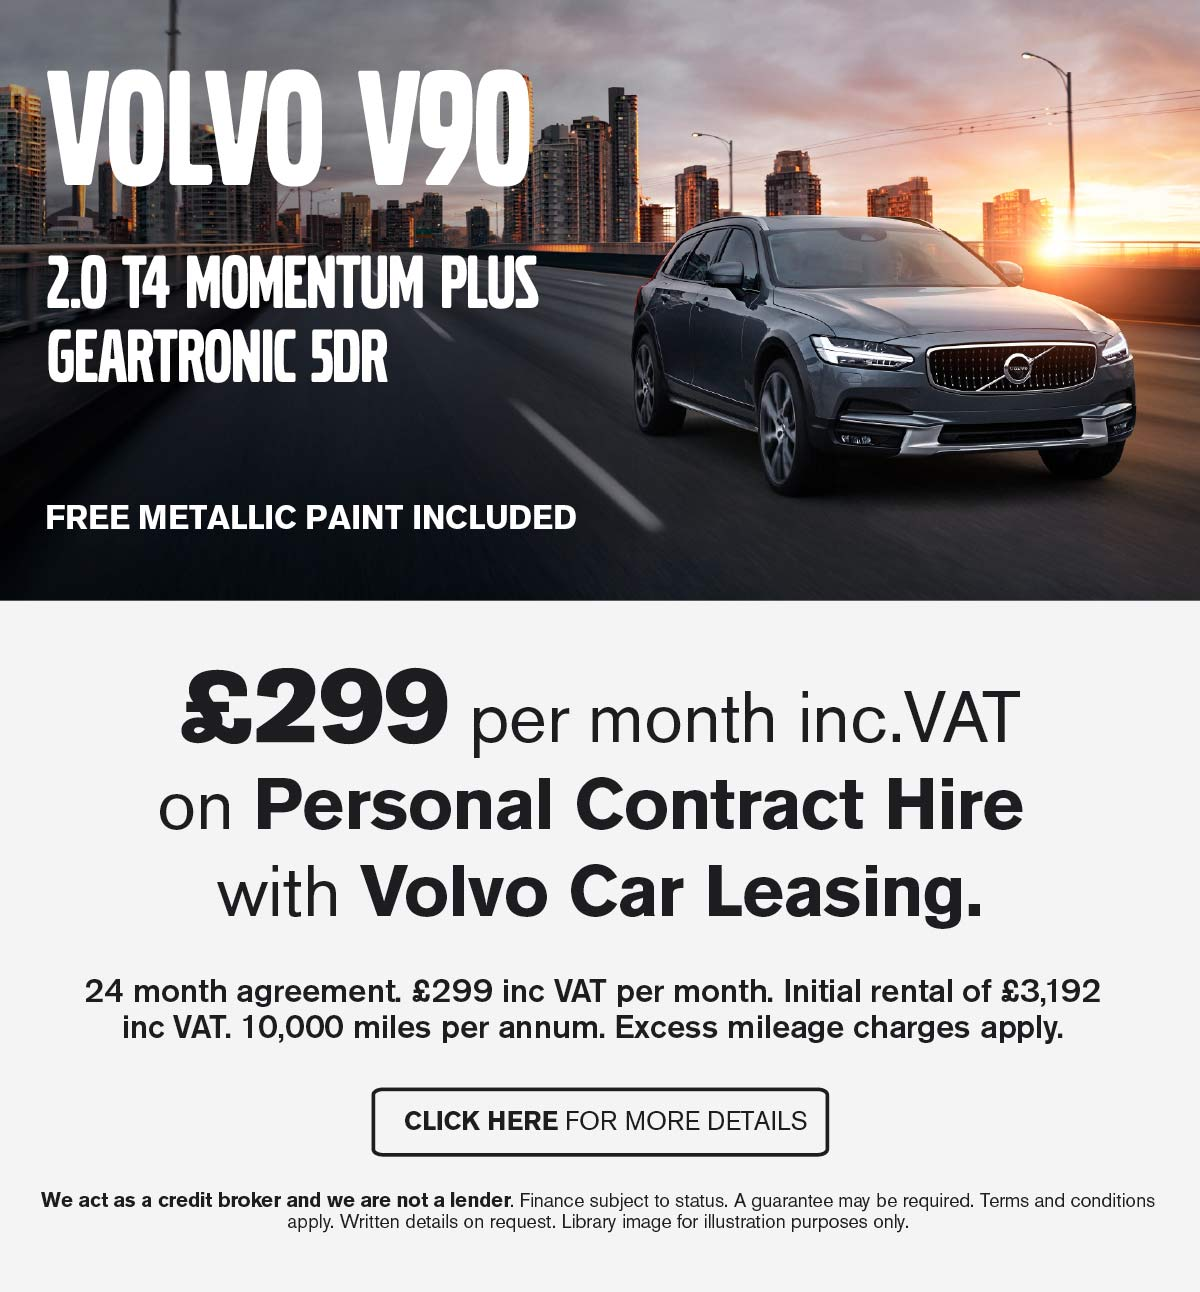 [MF02_100419]-Q2-Volvo-Website-Banner V90